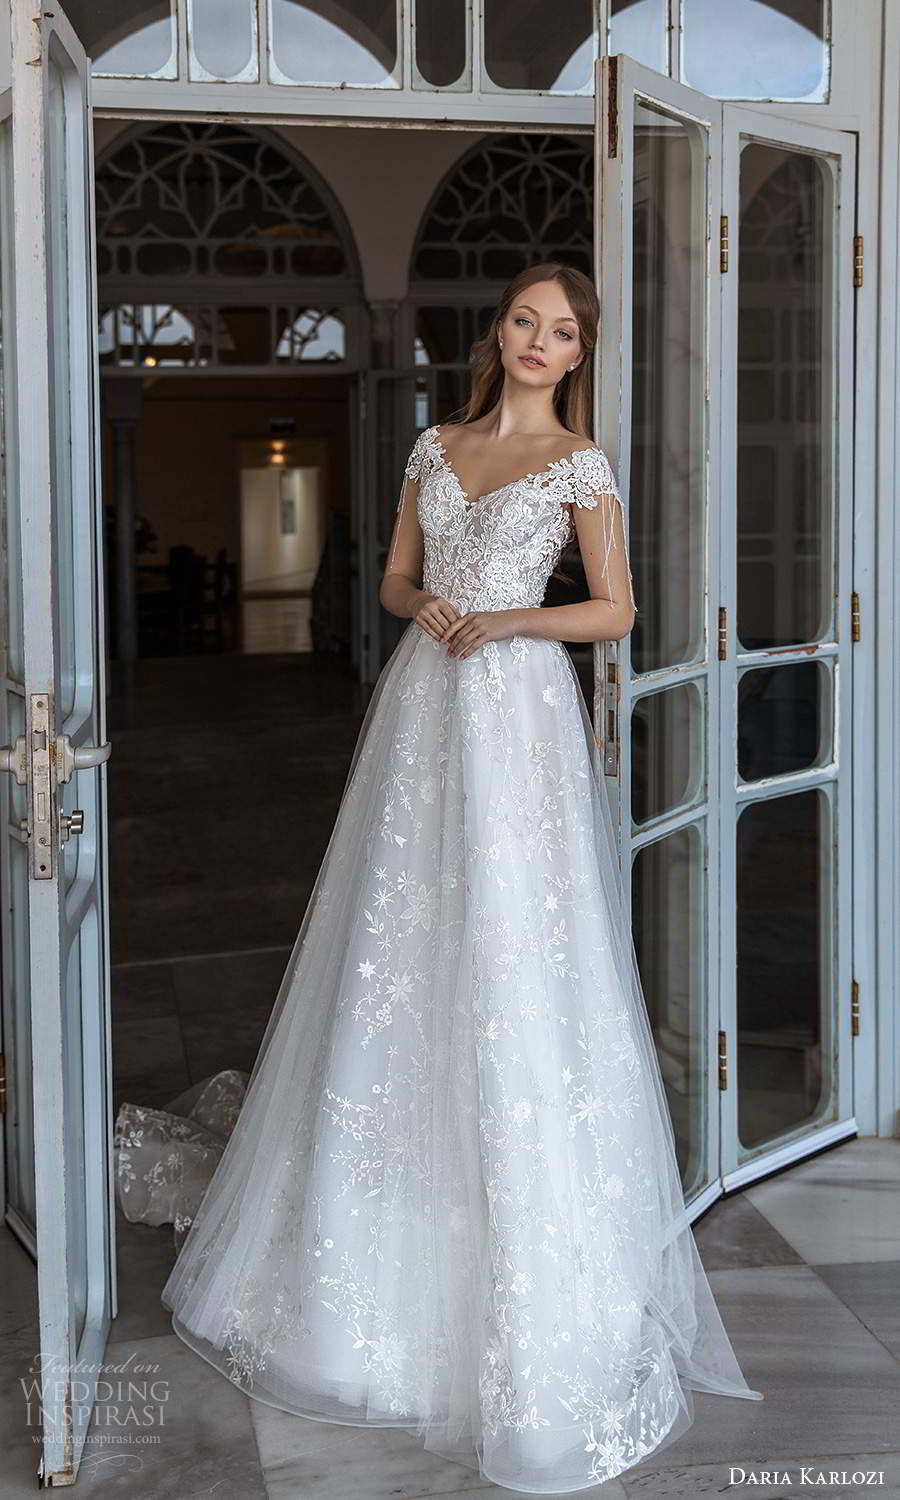 daria karlozi 2021 bridal cap sleeves off shoulder v neckline fully embellished lace a line ball gown wedding dress chapel train (10) mv